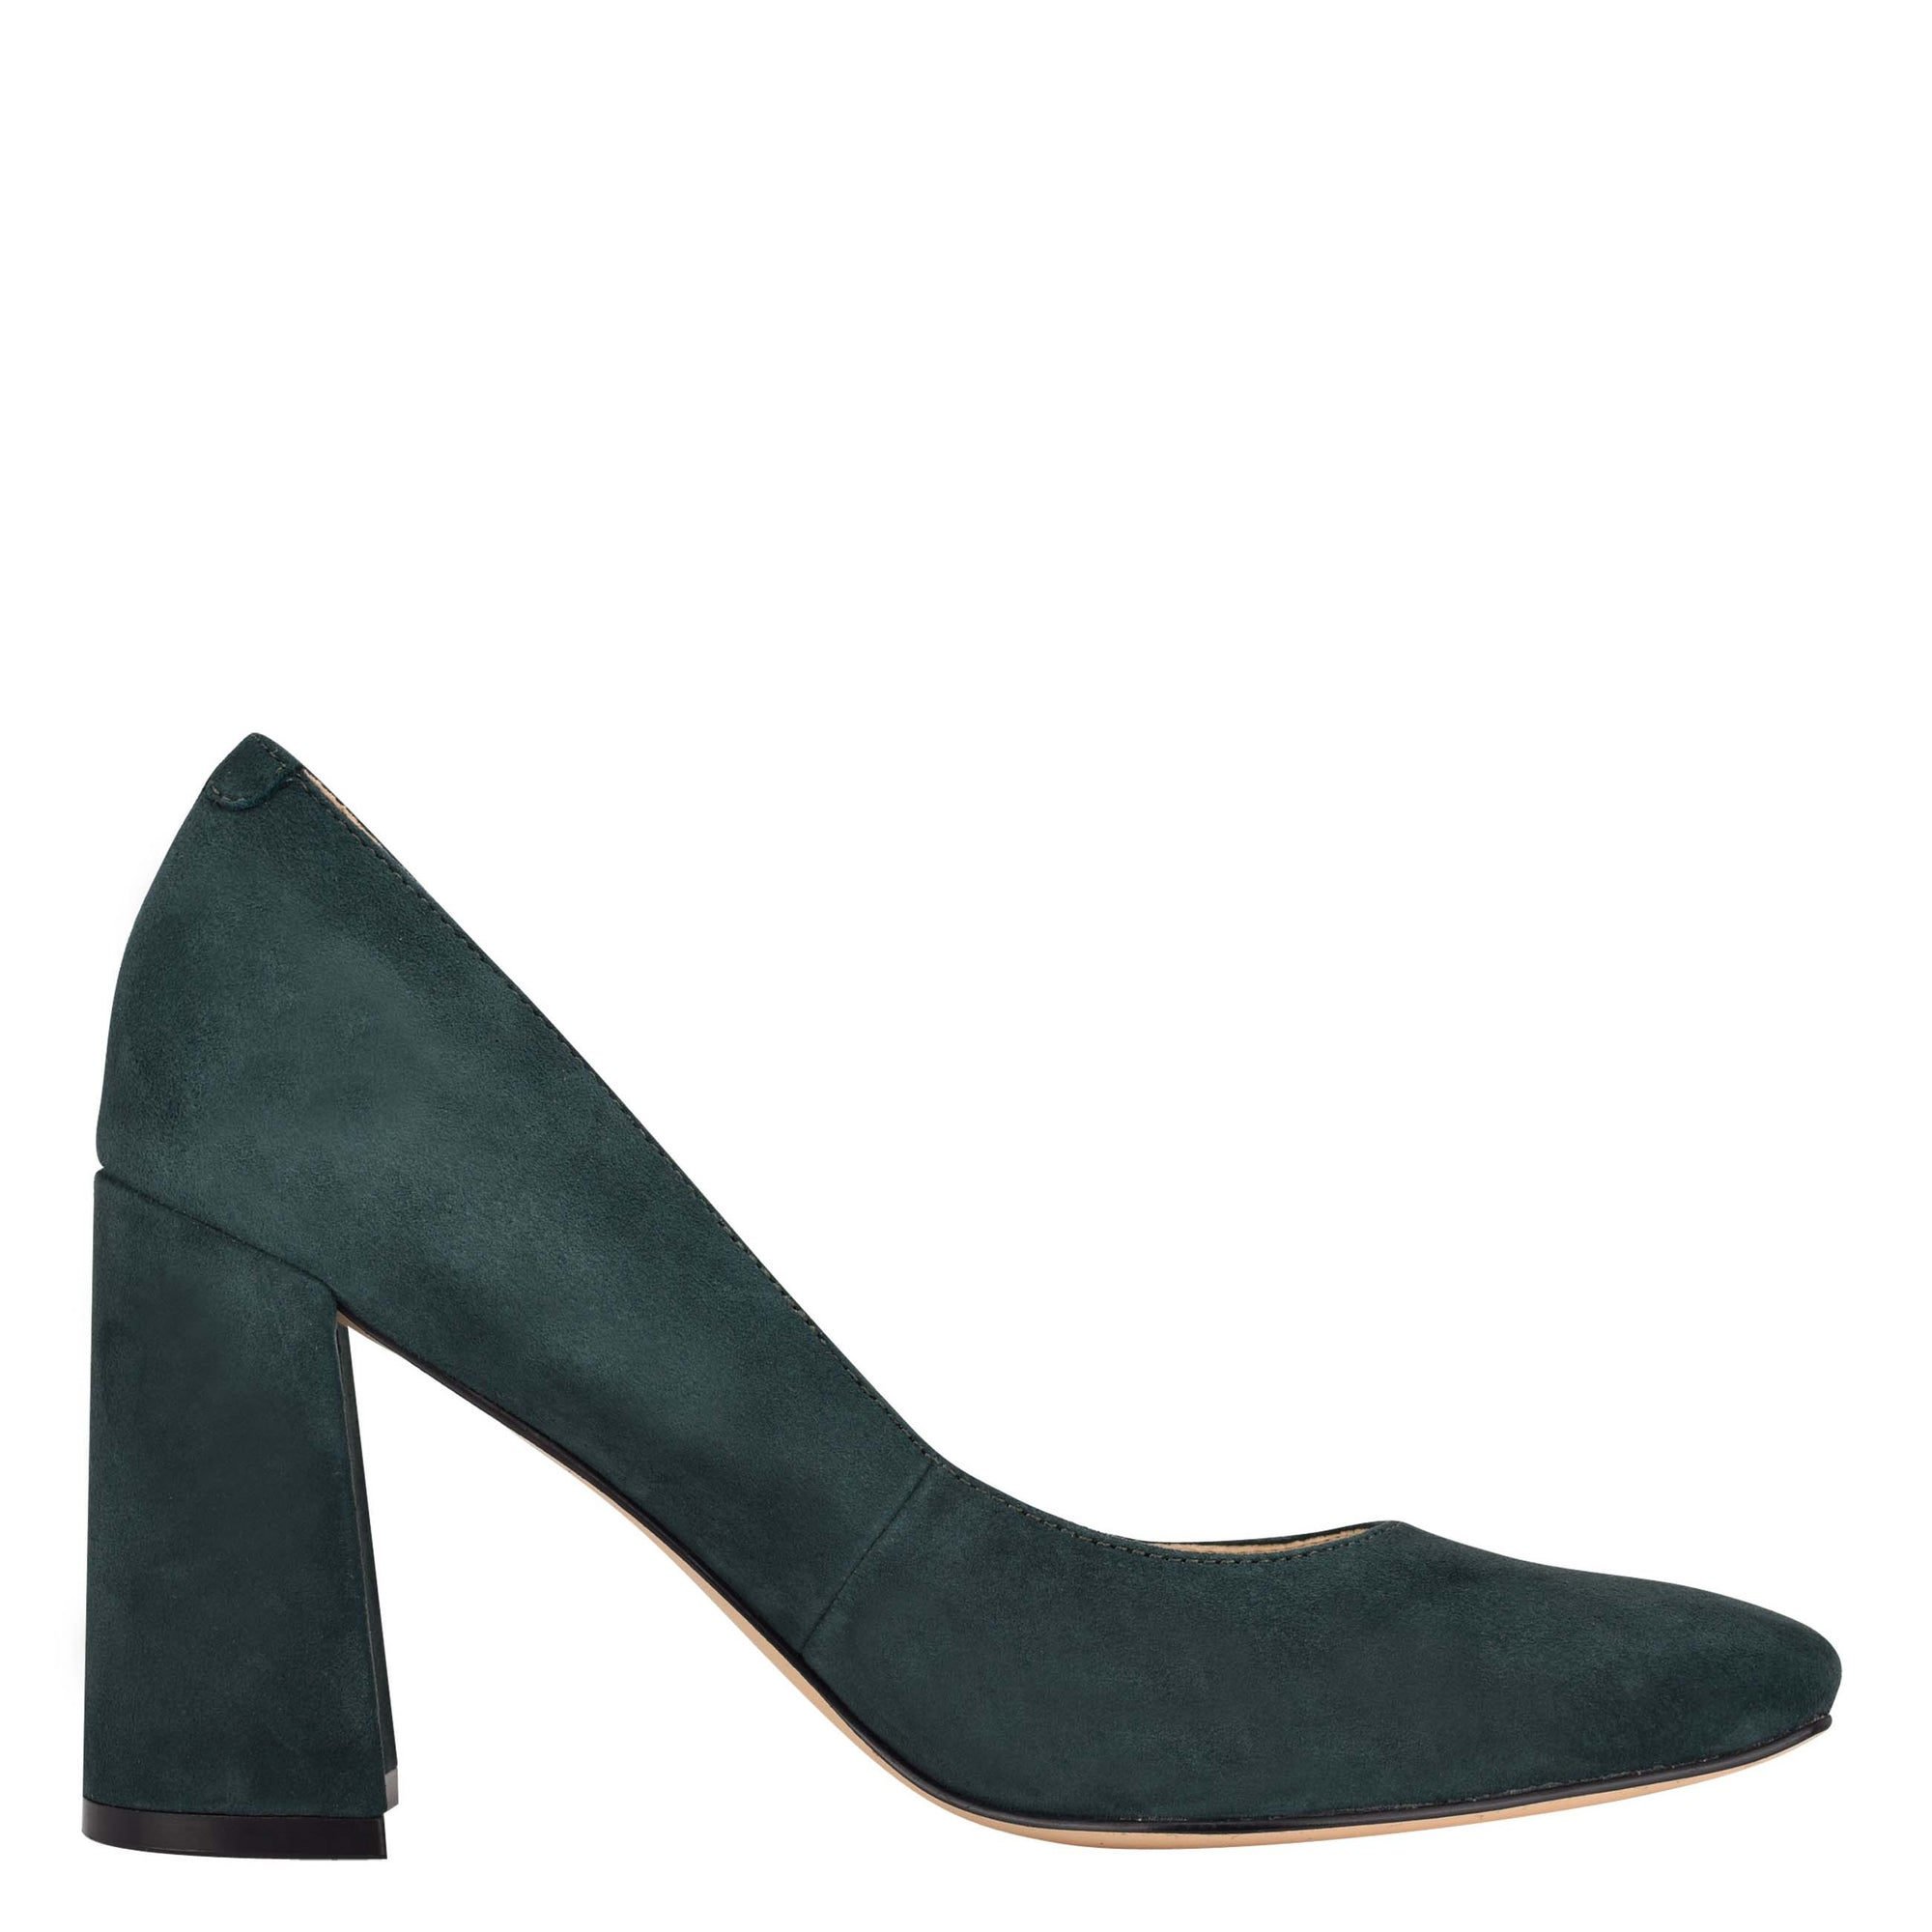 Udele Dress Pumps